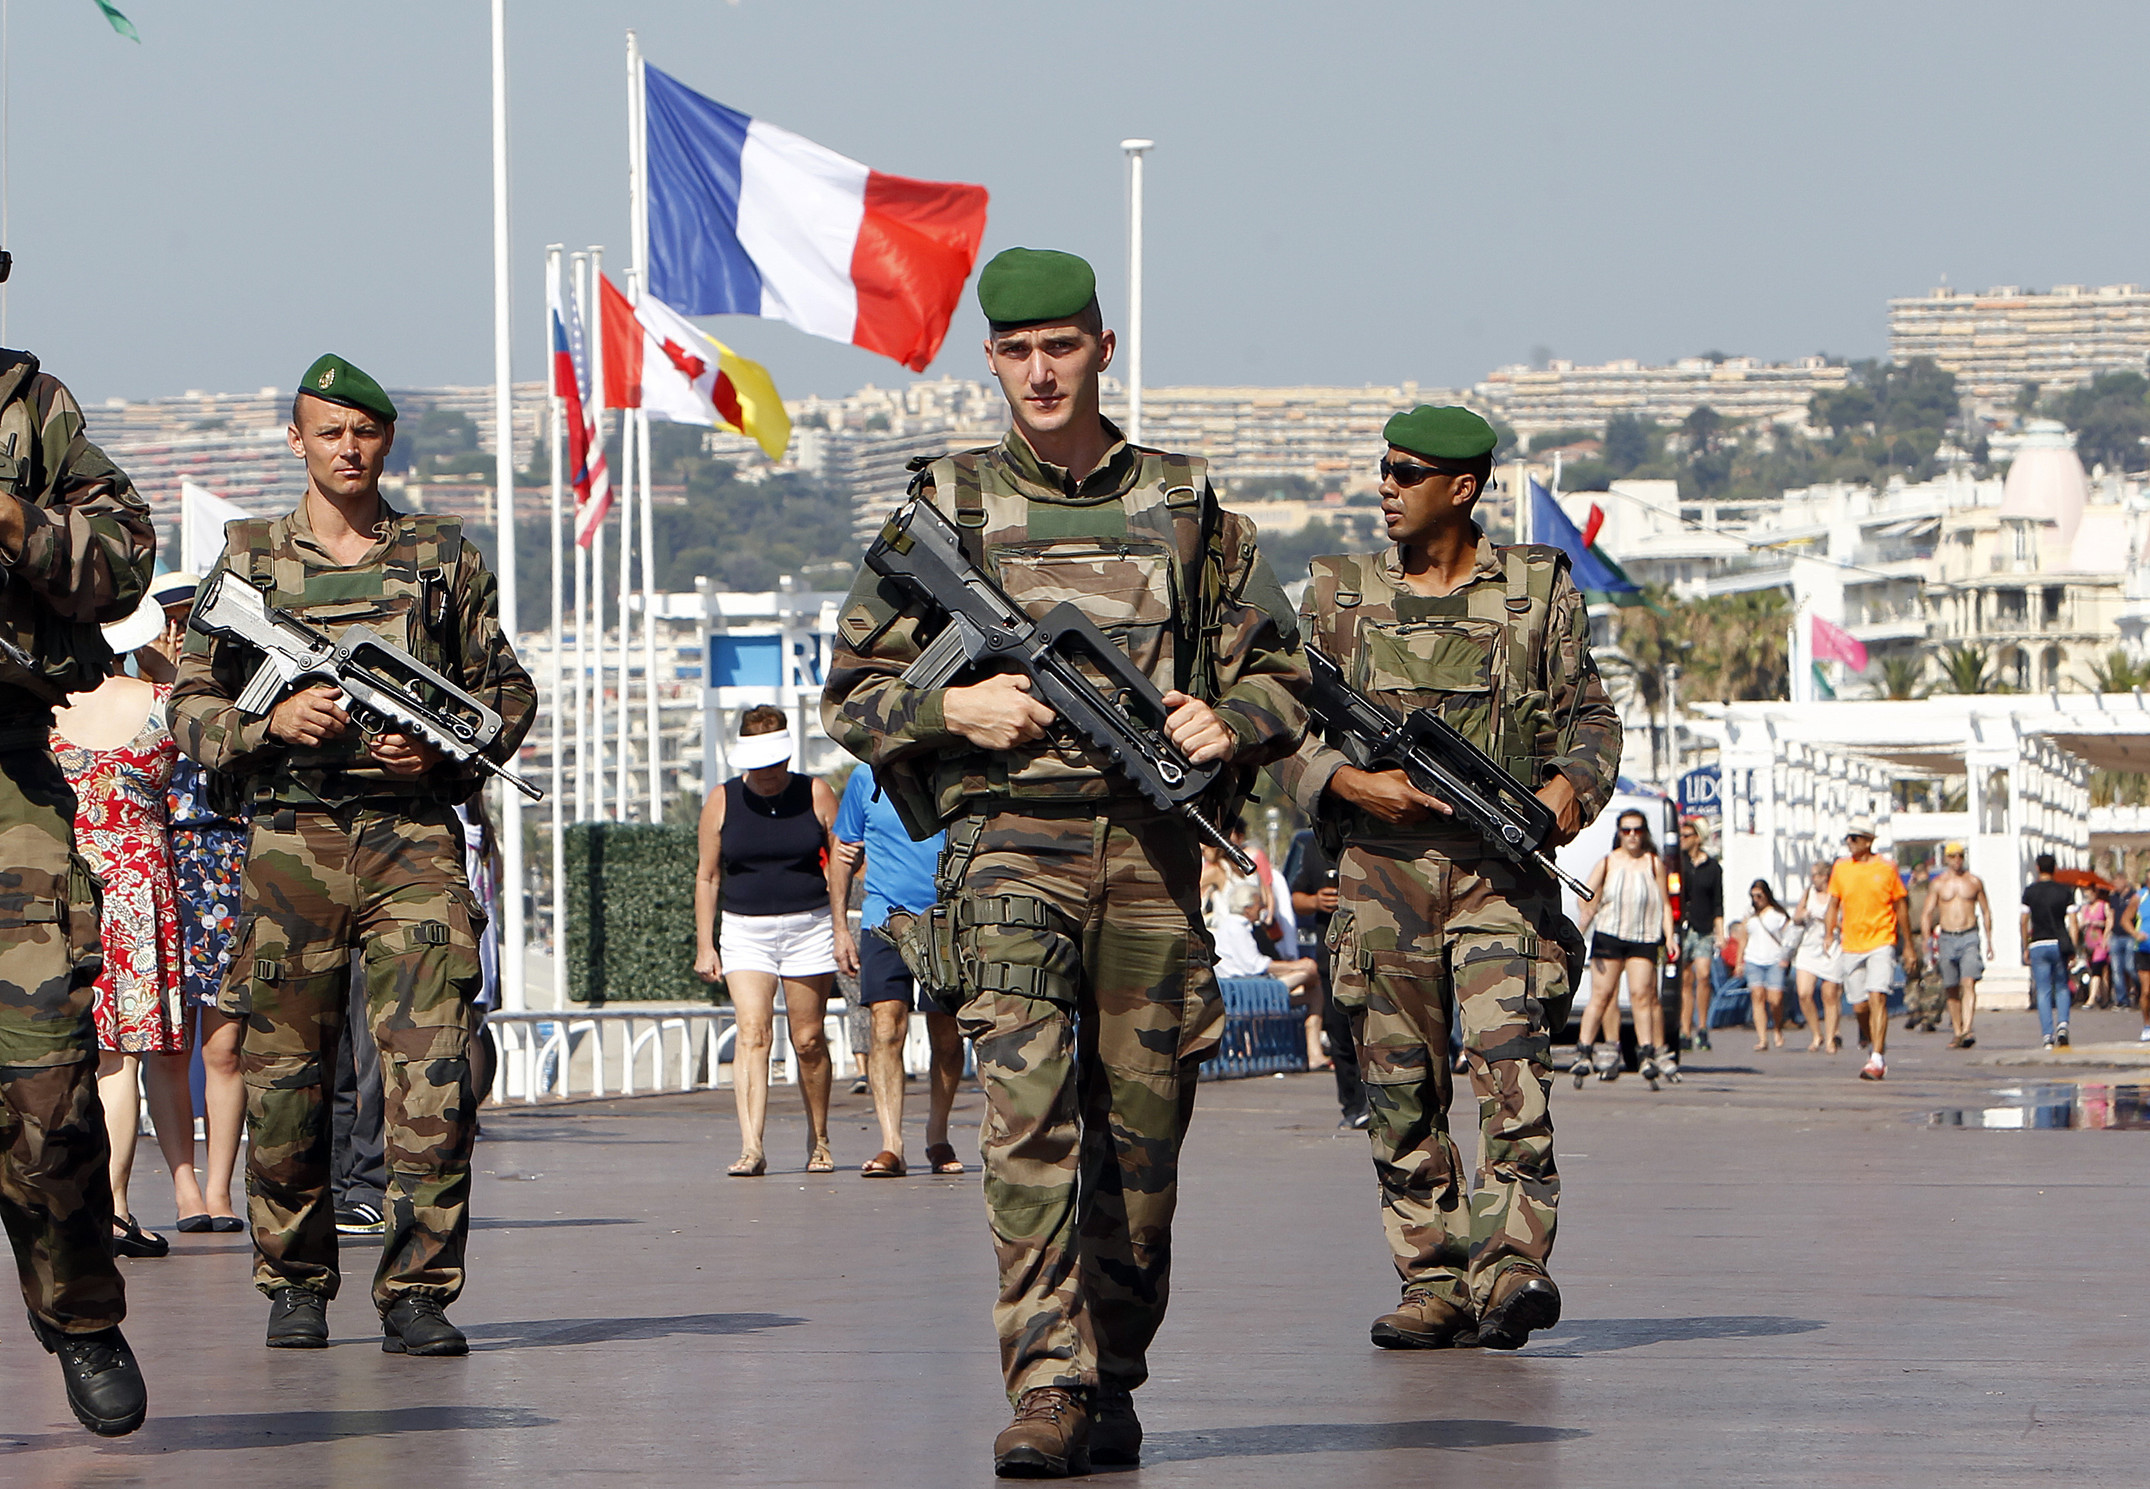 France Fights Radical Terrorism : Another Beheading in France while Rogue Malaysia Ex-President Mahathir Mohamad Calls upon Muslims to Punish French